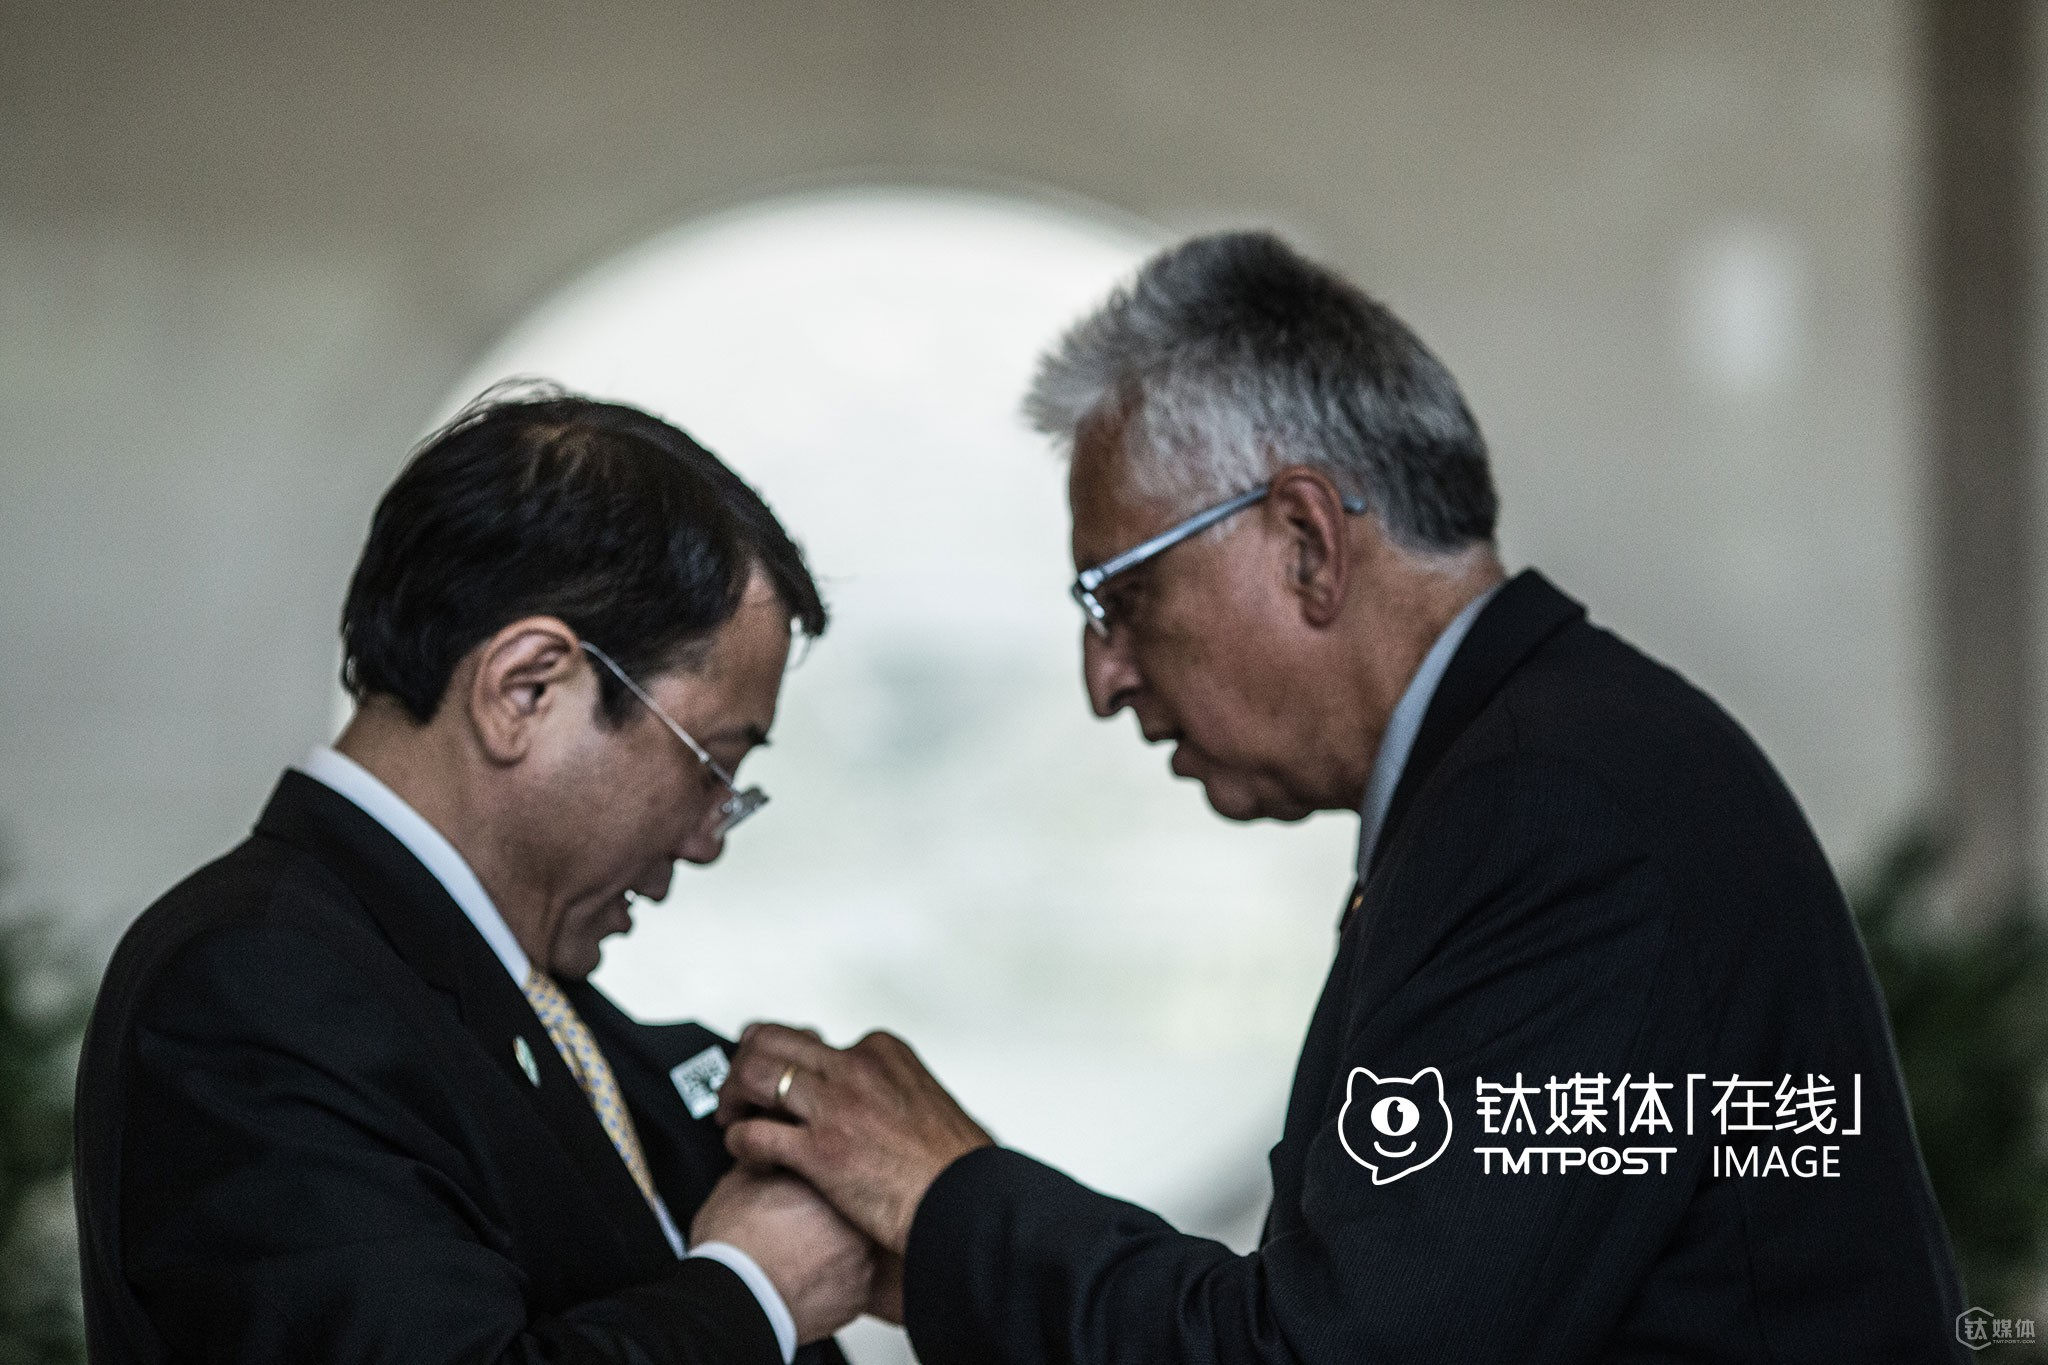 In Haidian District, Beijing, Eduardo Martinez, vice mayor of Richmond, helped a Chinese official to wear the city emblem of Richmond (Photographed by Zhu Lingyu)